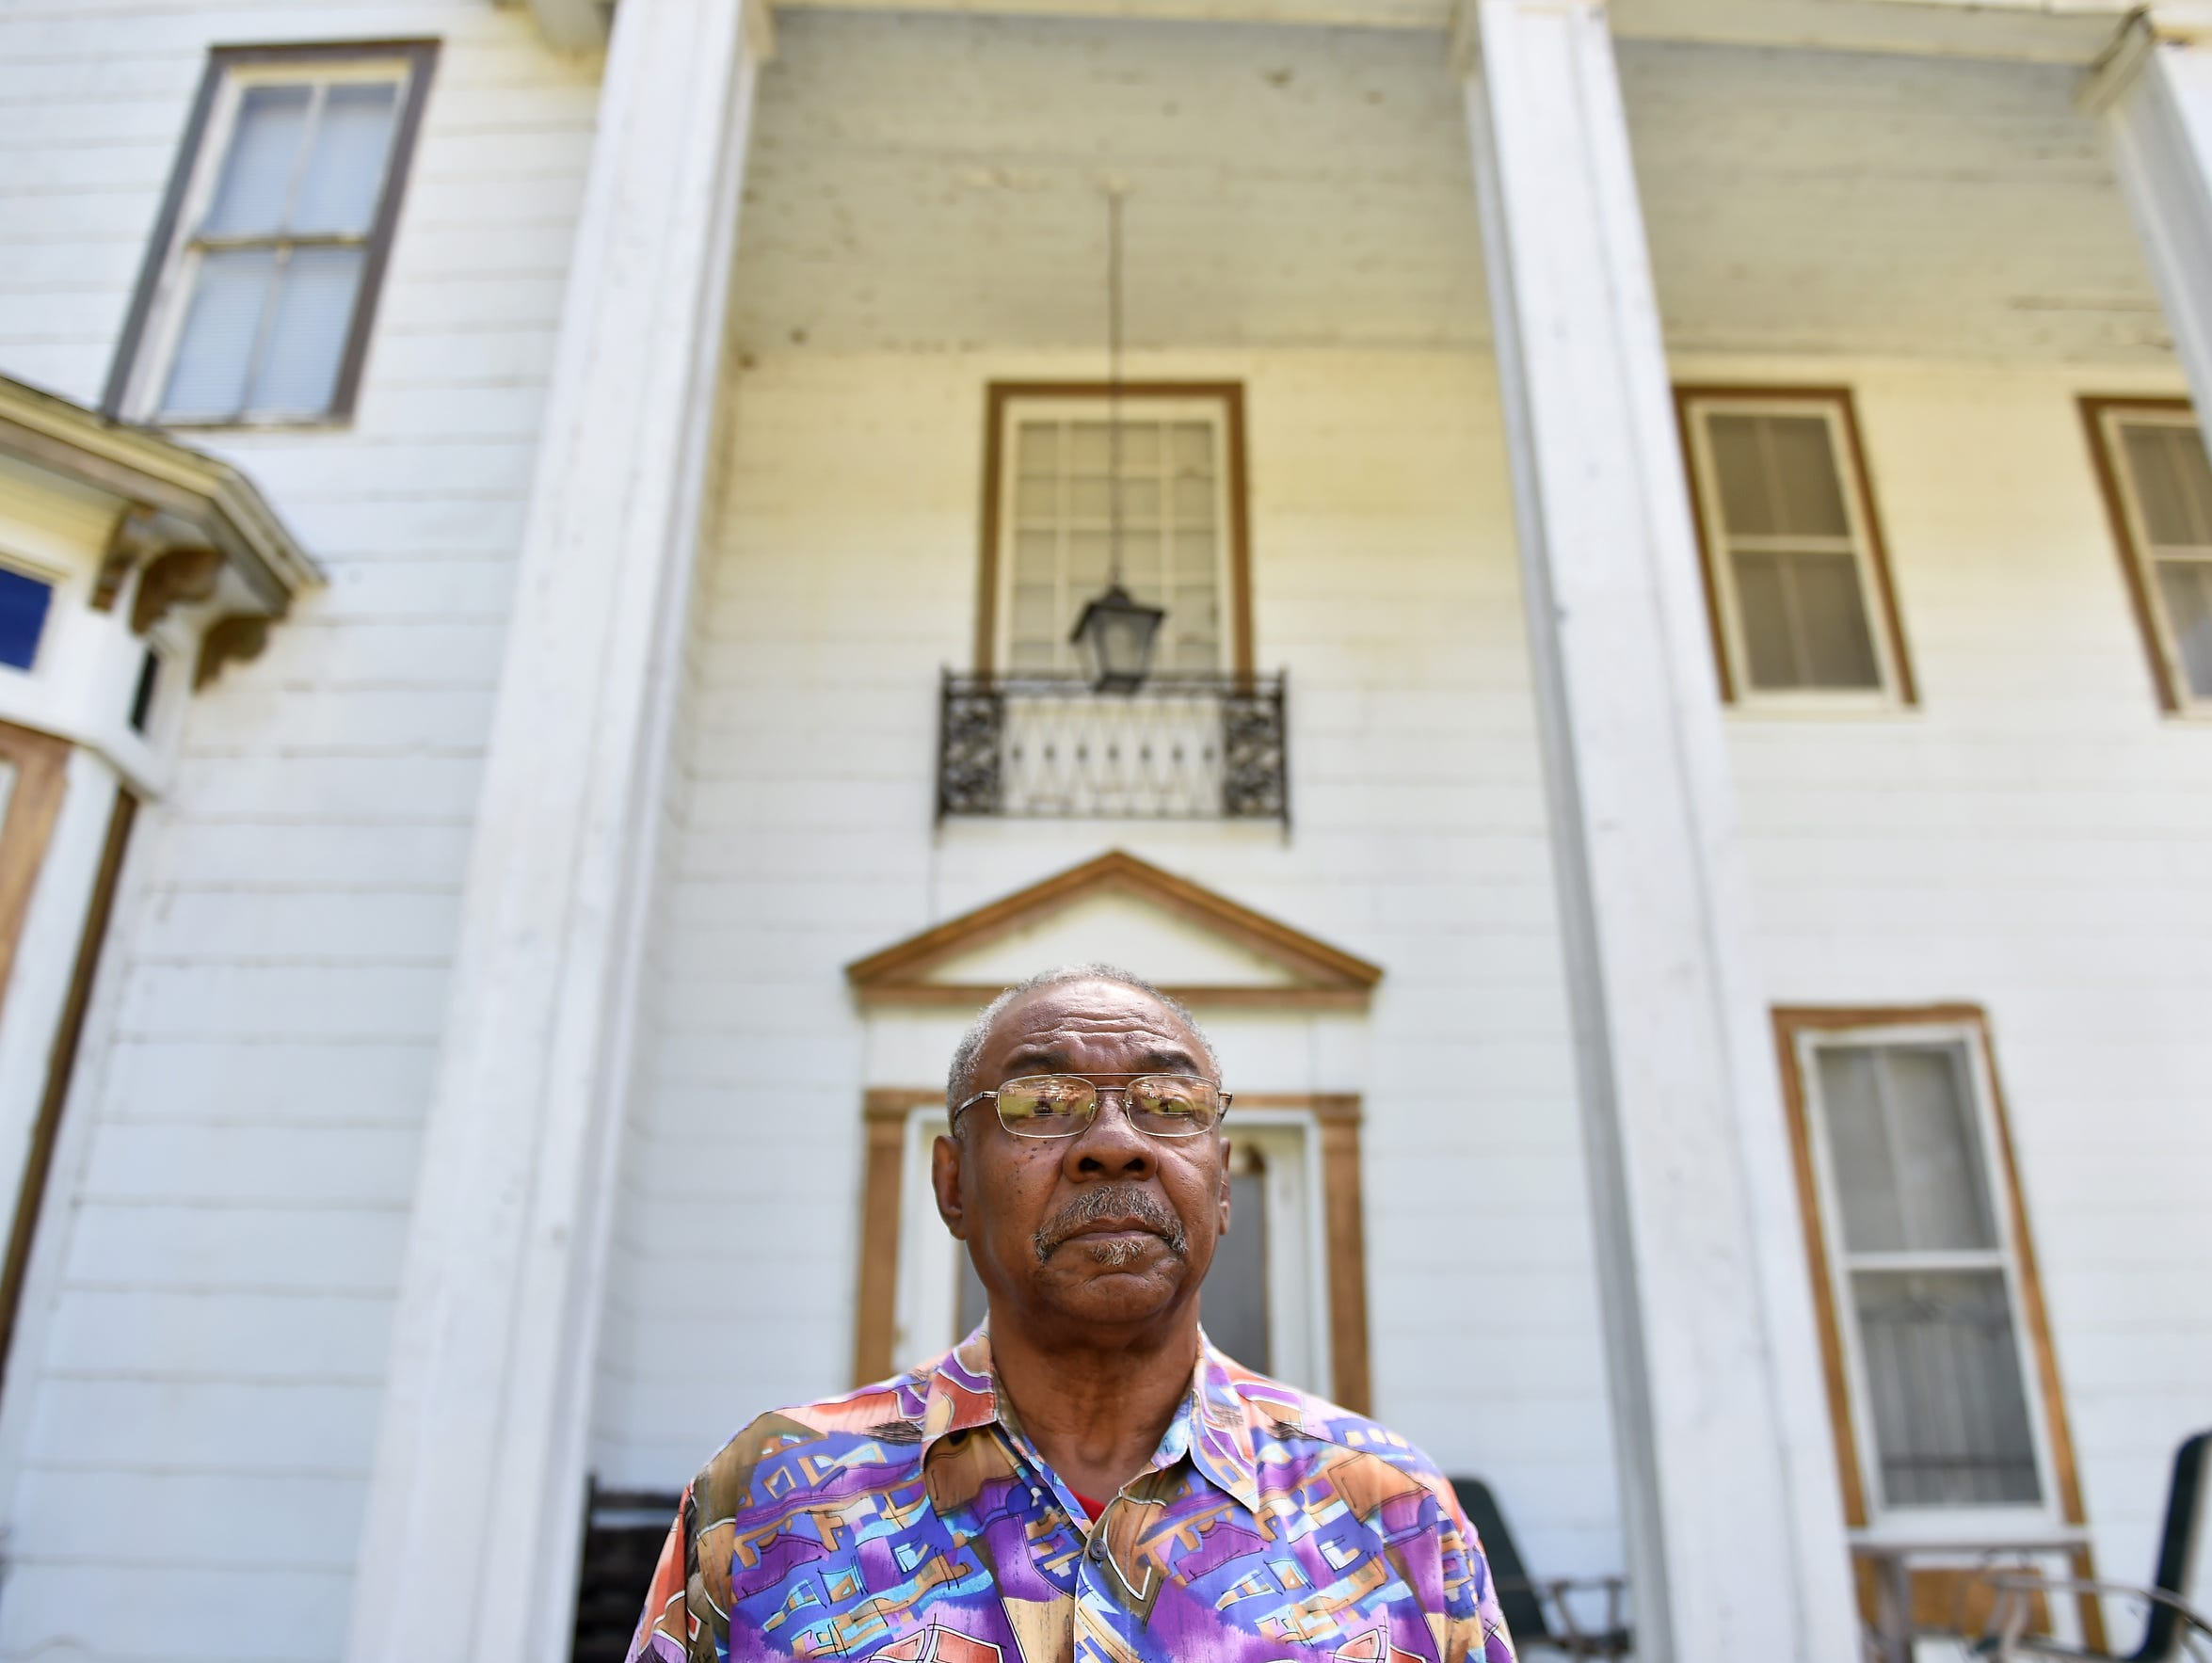 Eddie Carthan stands outside his home in Tchula in